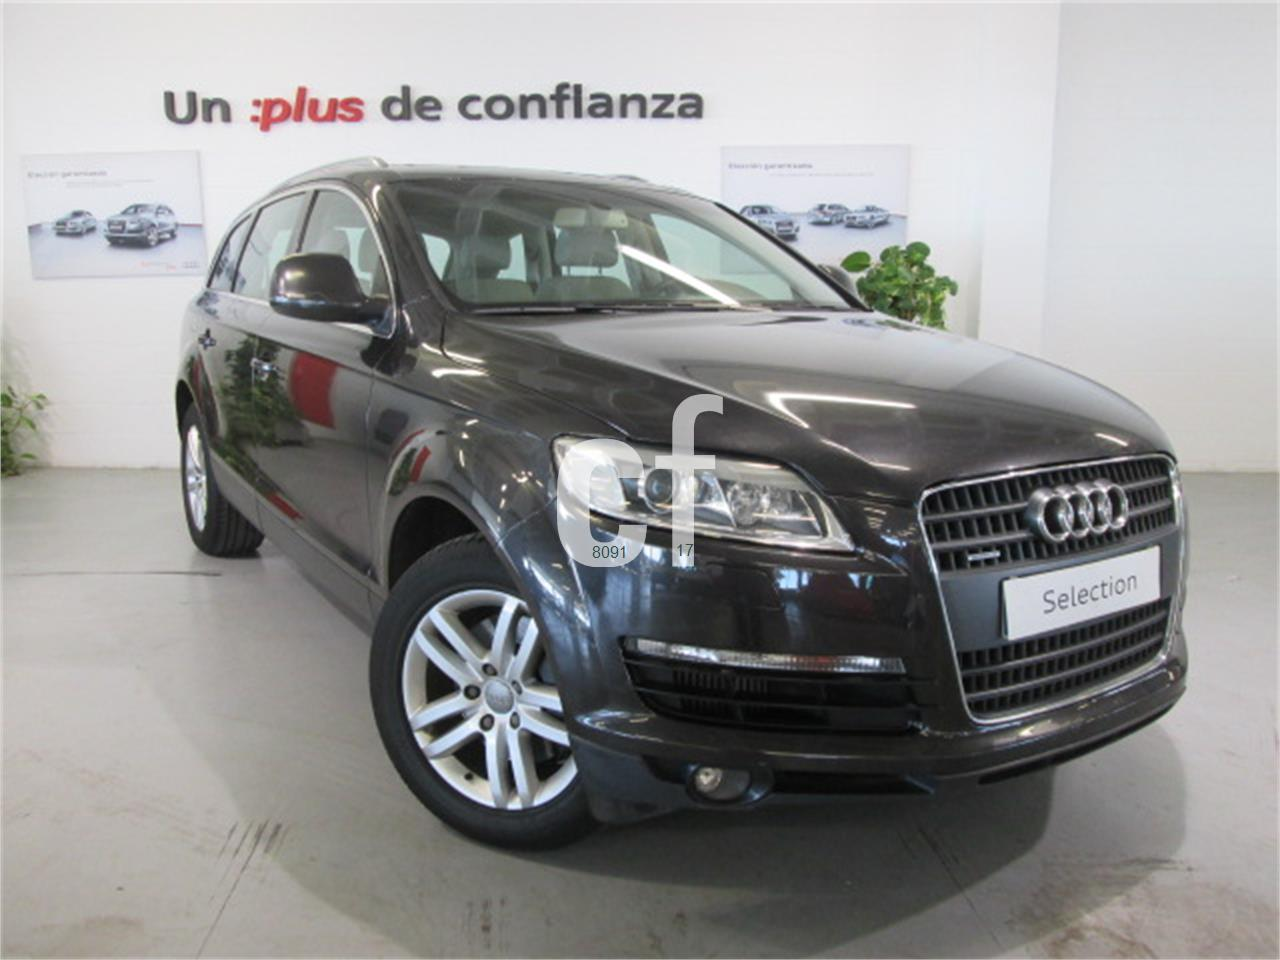 voitures audi q7 occasion c diz espagne. Black Bedroom Furniture Sets. Home Design Ideas